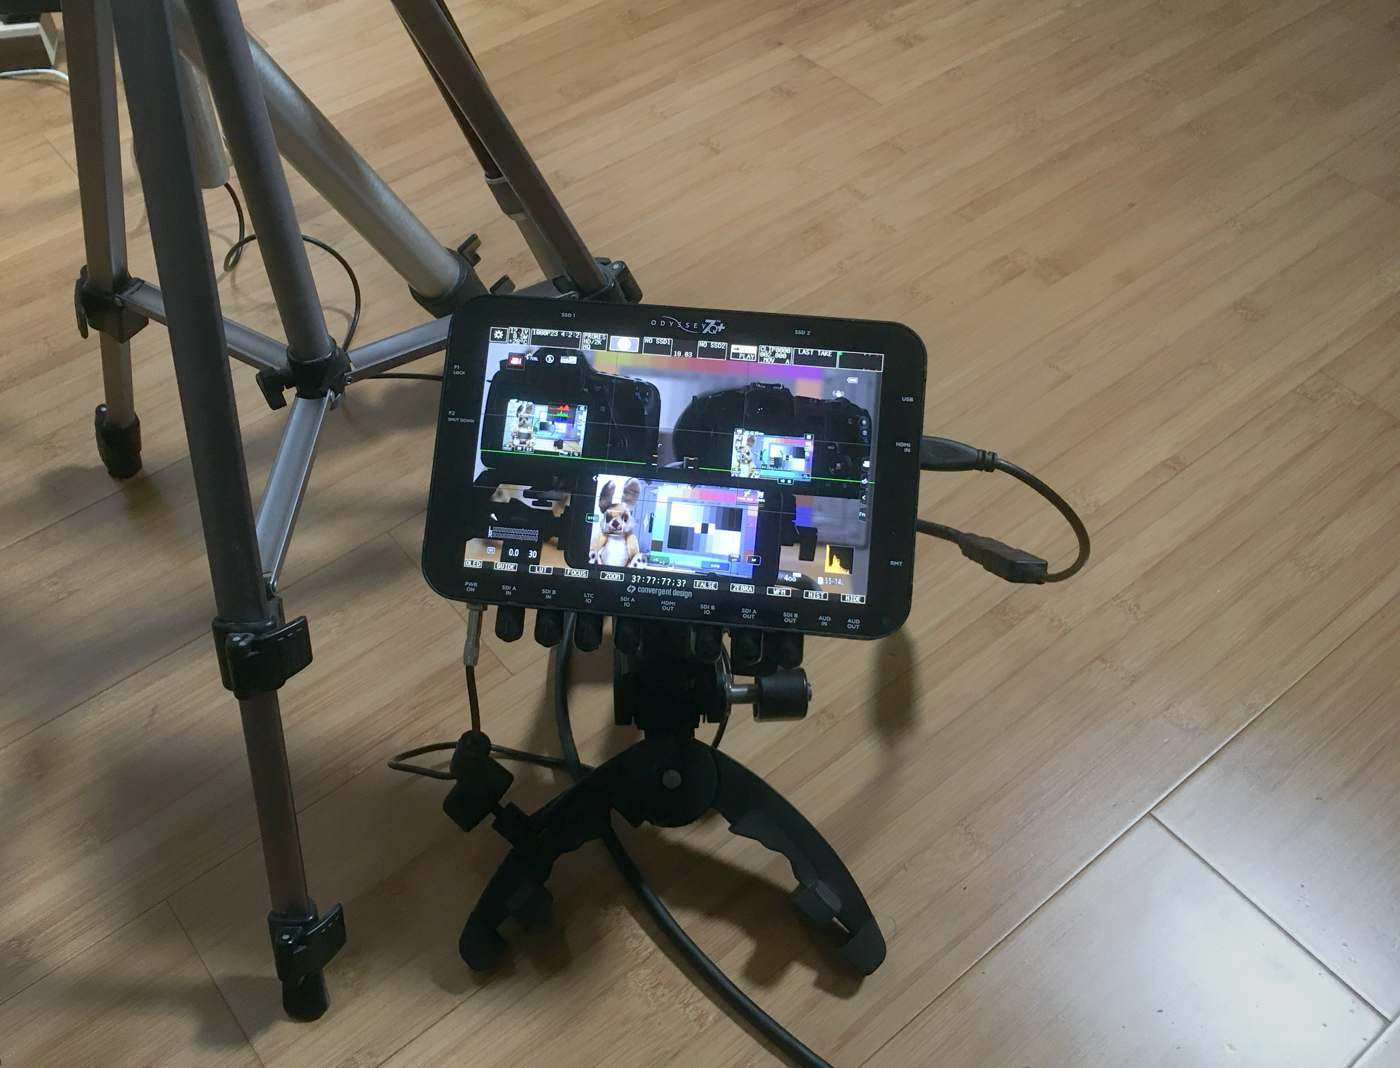 Odyssey 7Q+ in use on 11 August 2020